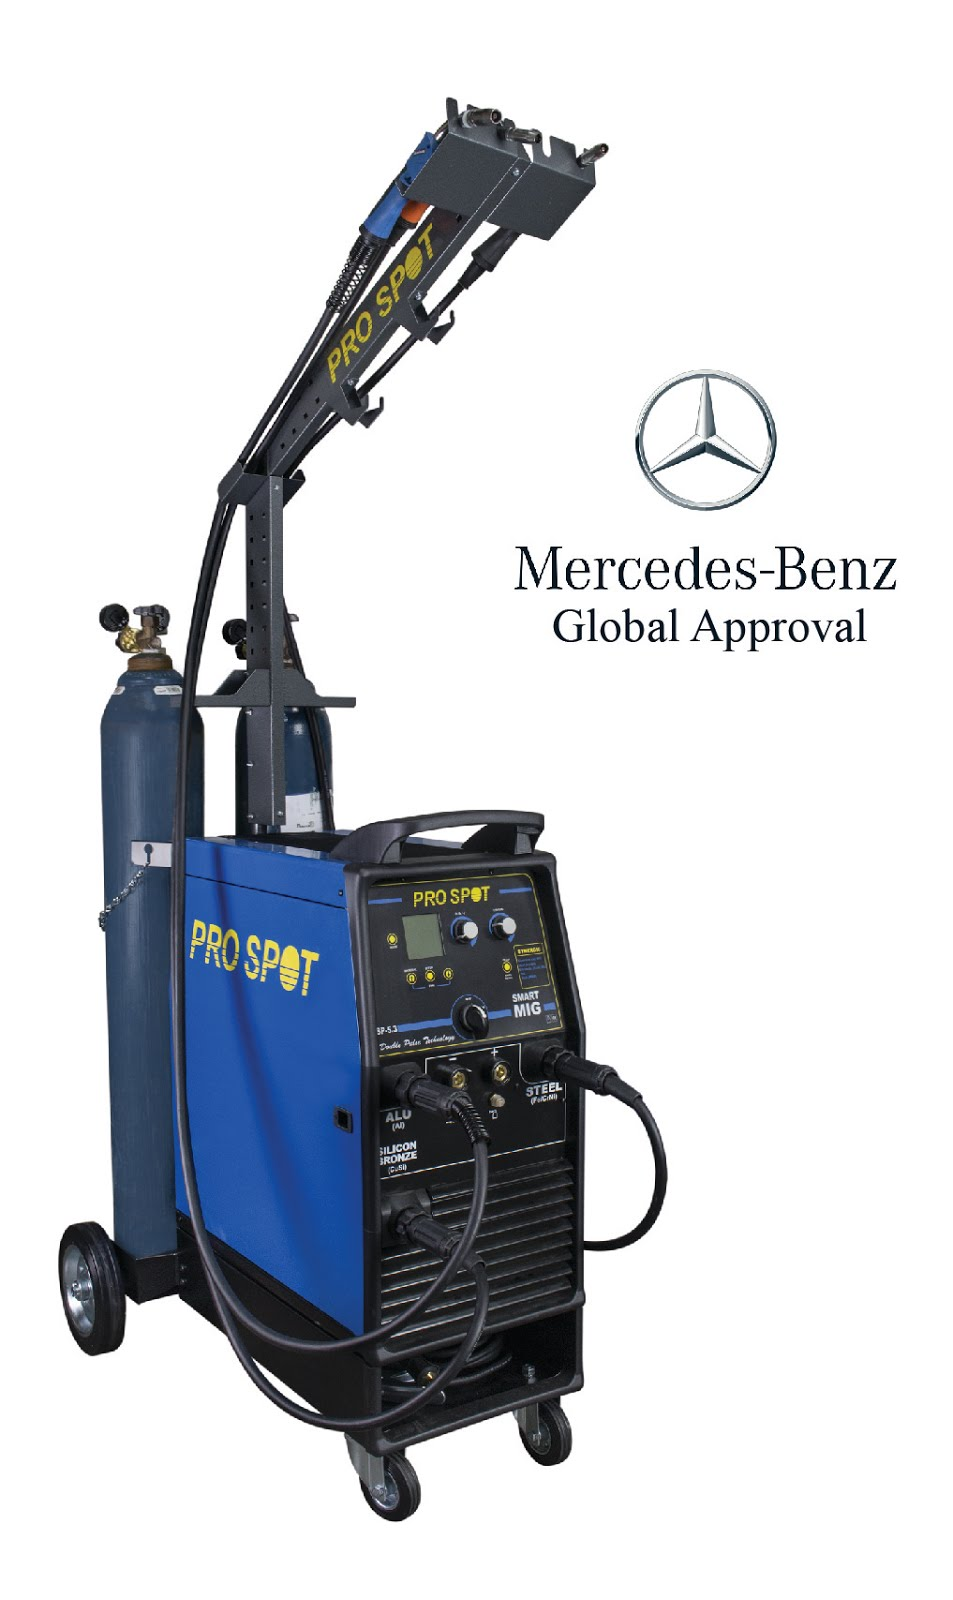 Mercedes Benz Global Approval on SP-5.3 Double Pulse MIG